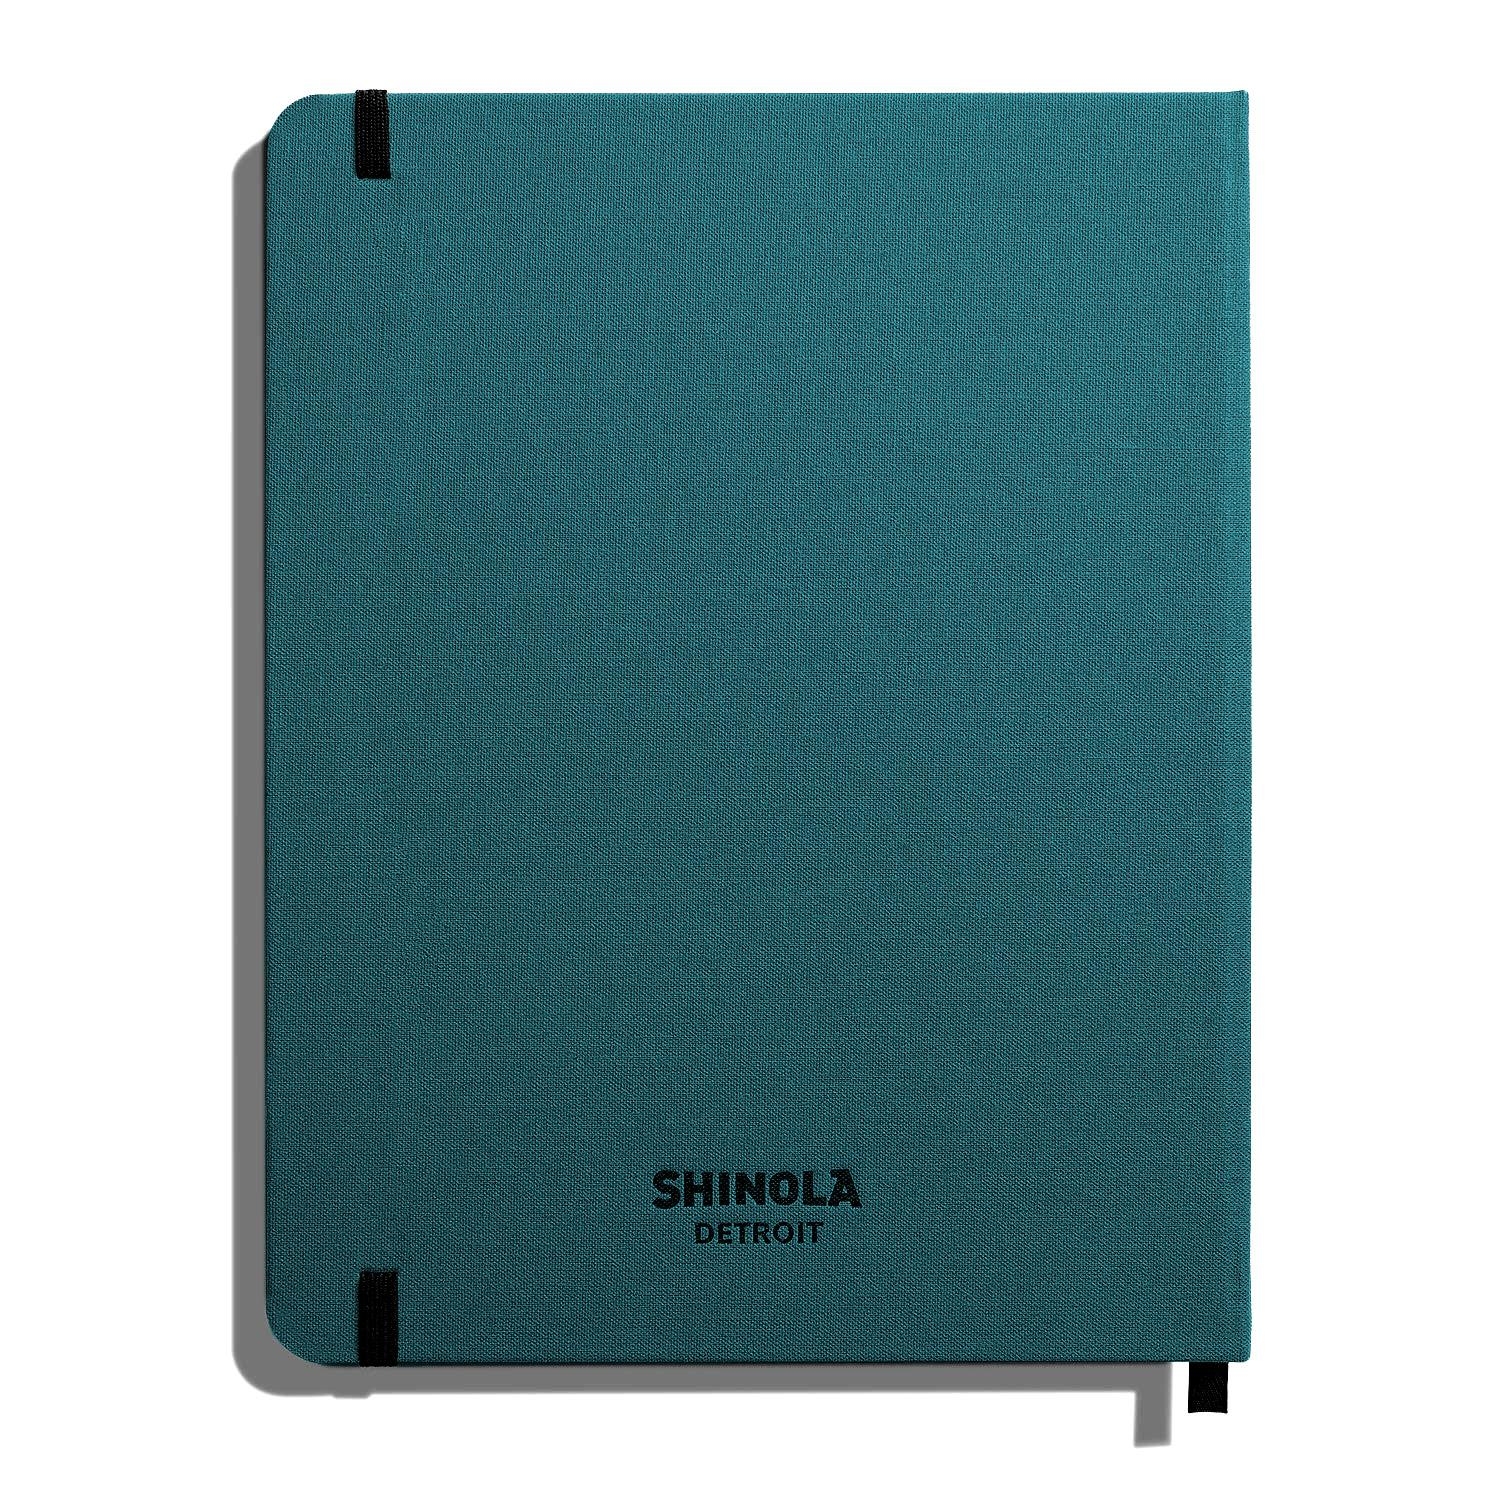 "Shinola Ruled Hard Linen 7""x9"" Journal Dark Teal Back"